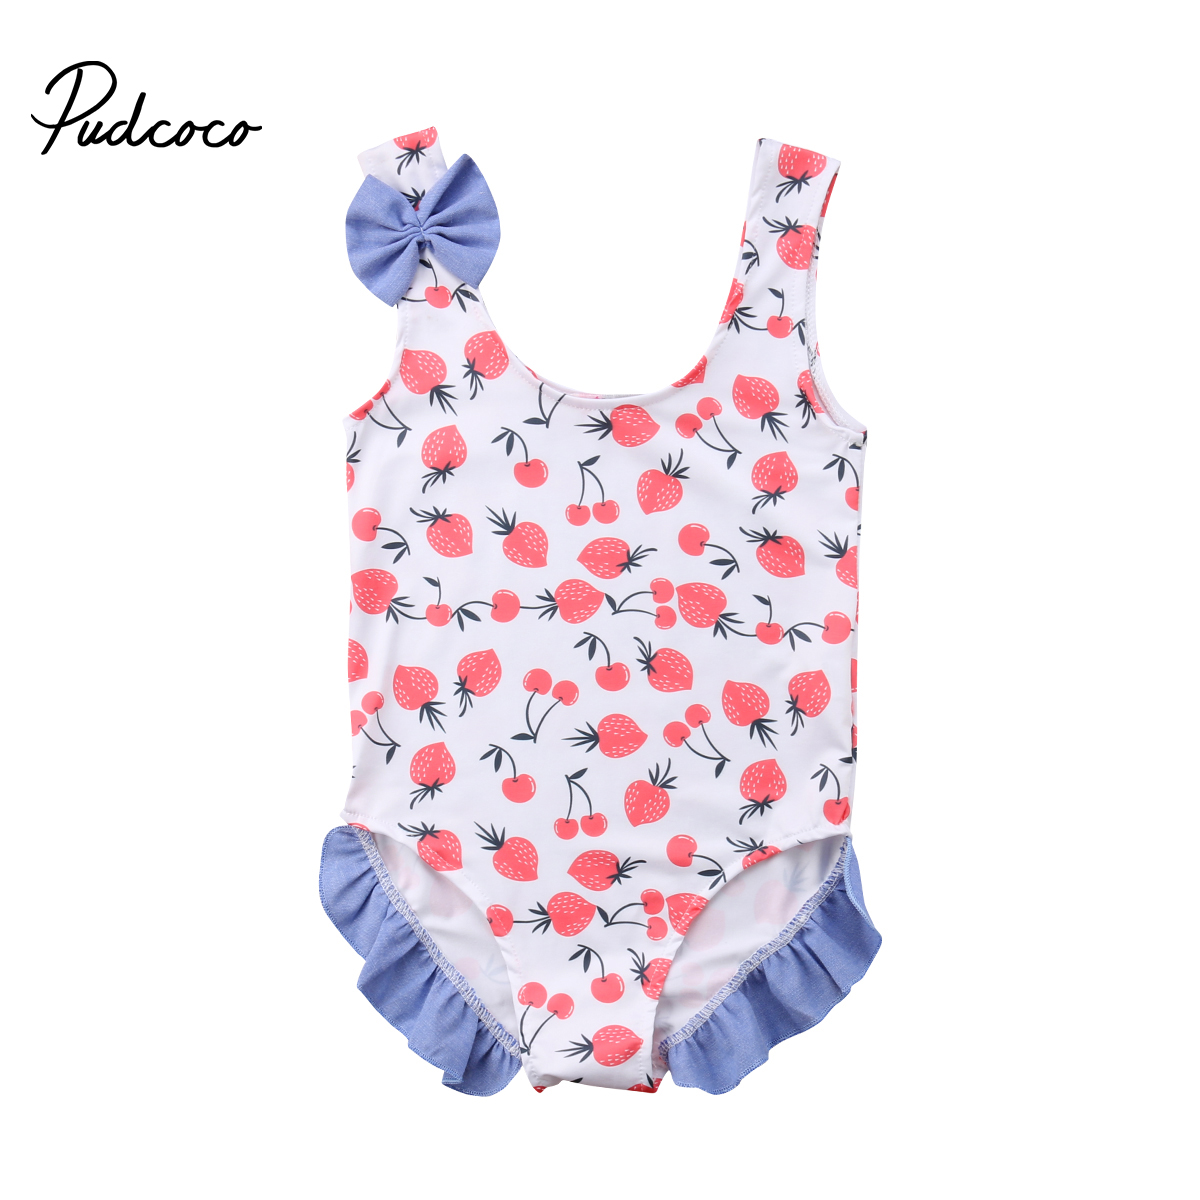 6d787c8381 2018 Brand New Newborn Toddler Baby Girl Casual Floral Summer Swimsuit  Swimwear Sleeveless Bow Cherry Ruffle Bathing Suit Bikini-in Rompers from  Mother ...